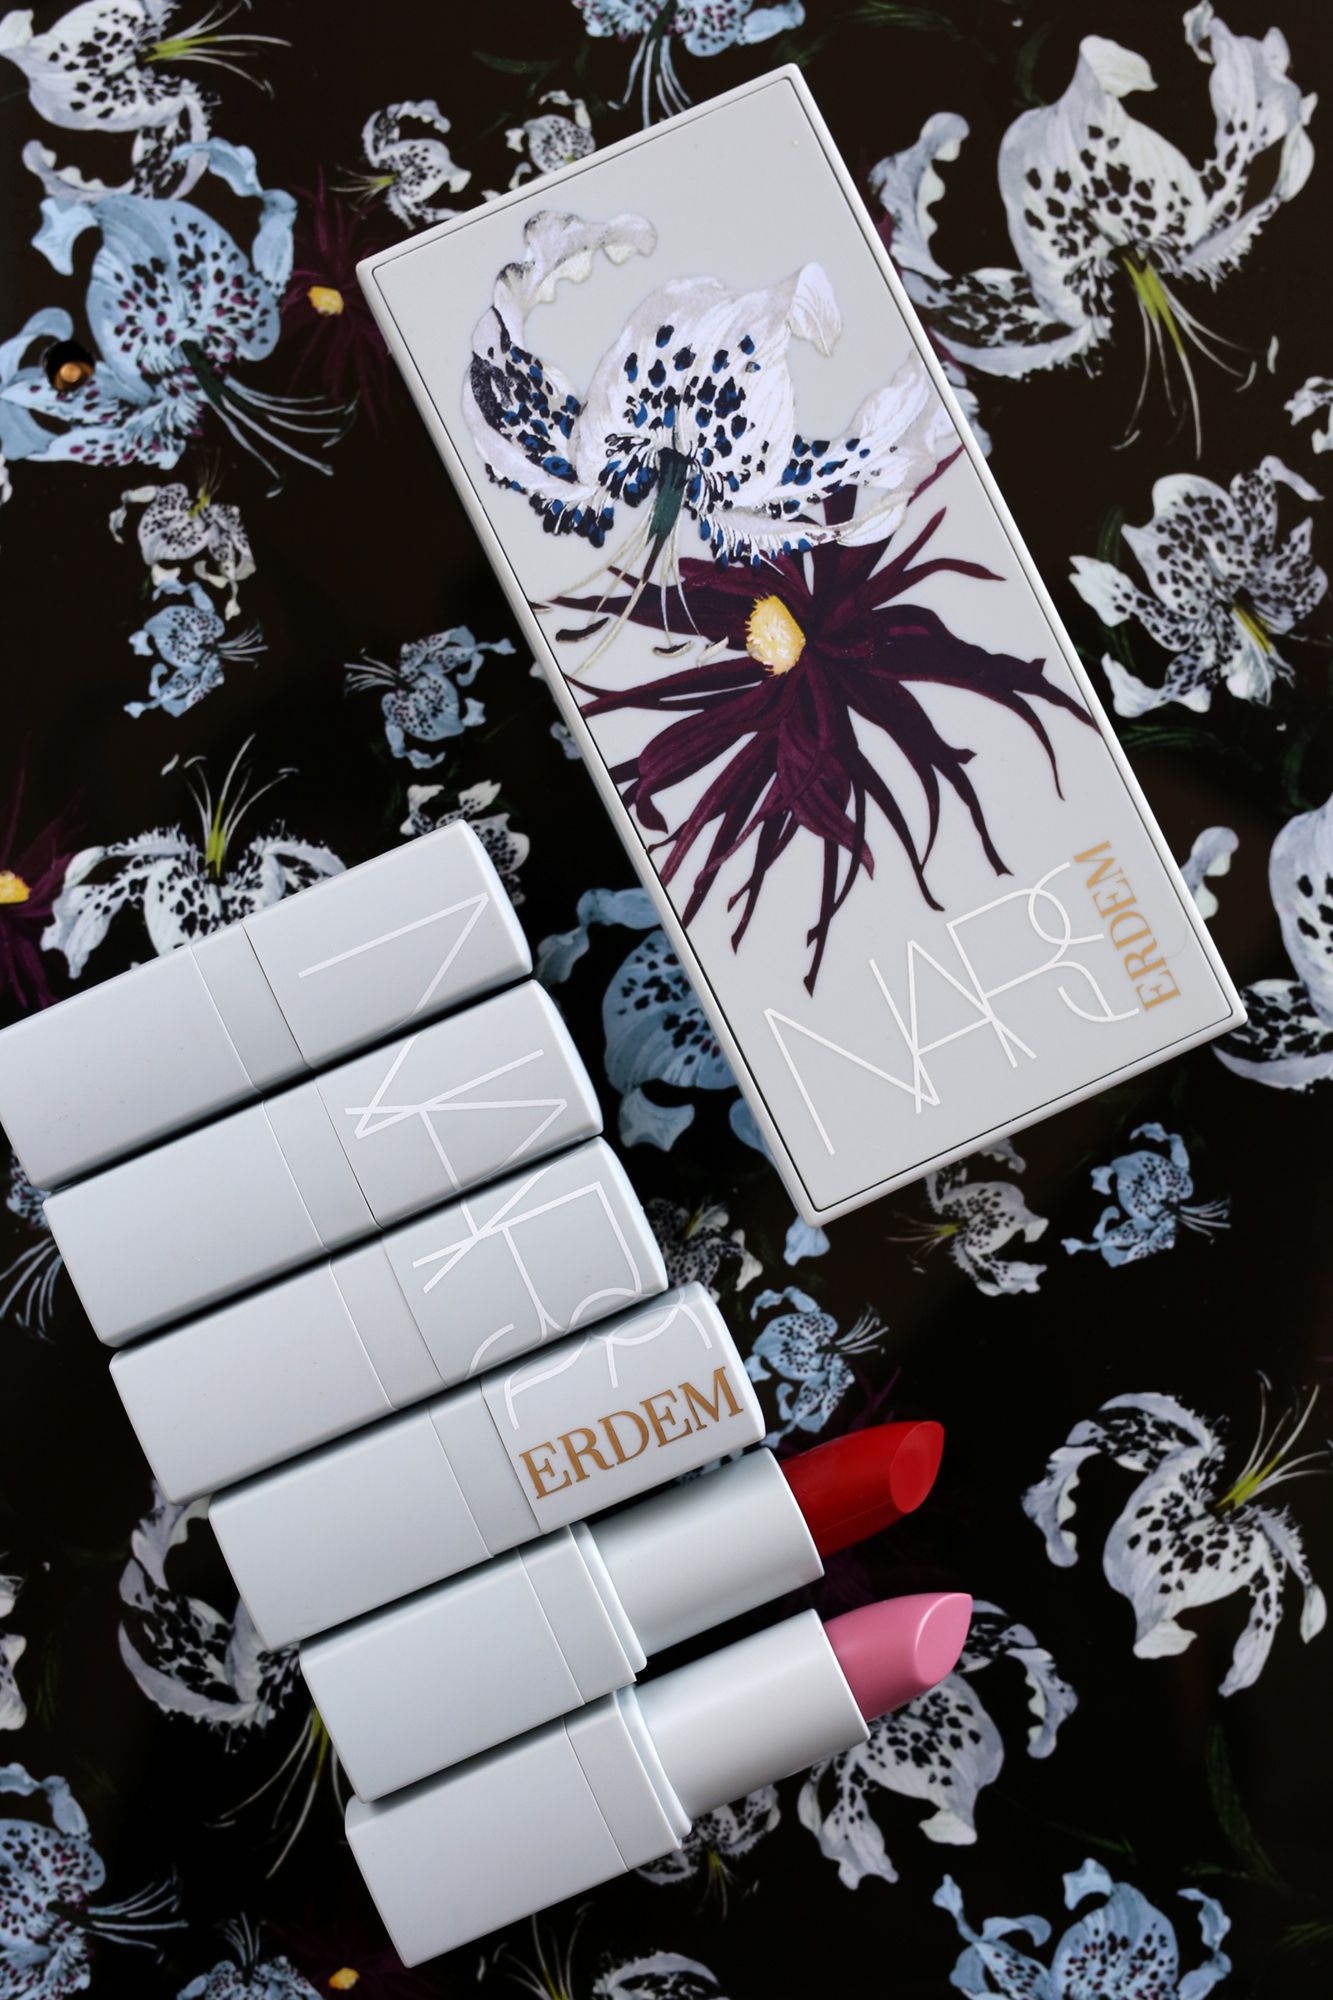 NARS x Erdem Full Lipstick Collection - Carnal Carnation, Bloodflower, Wild Flower, Moon Orchid, Larkspur, Voodoo Lily_0066.jpg